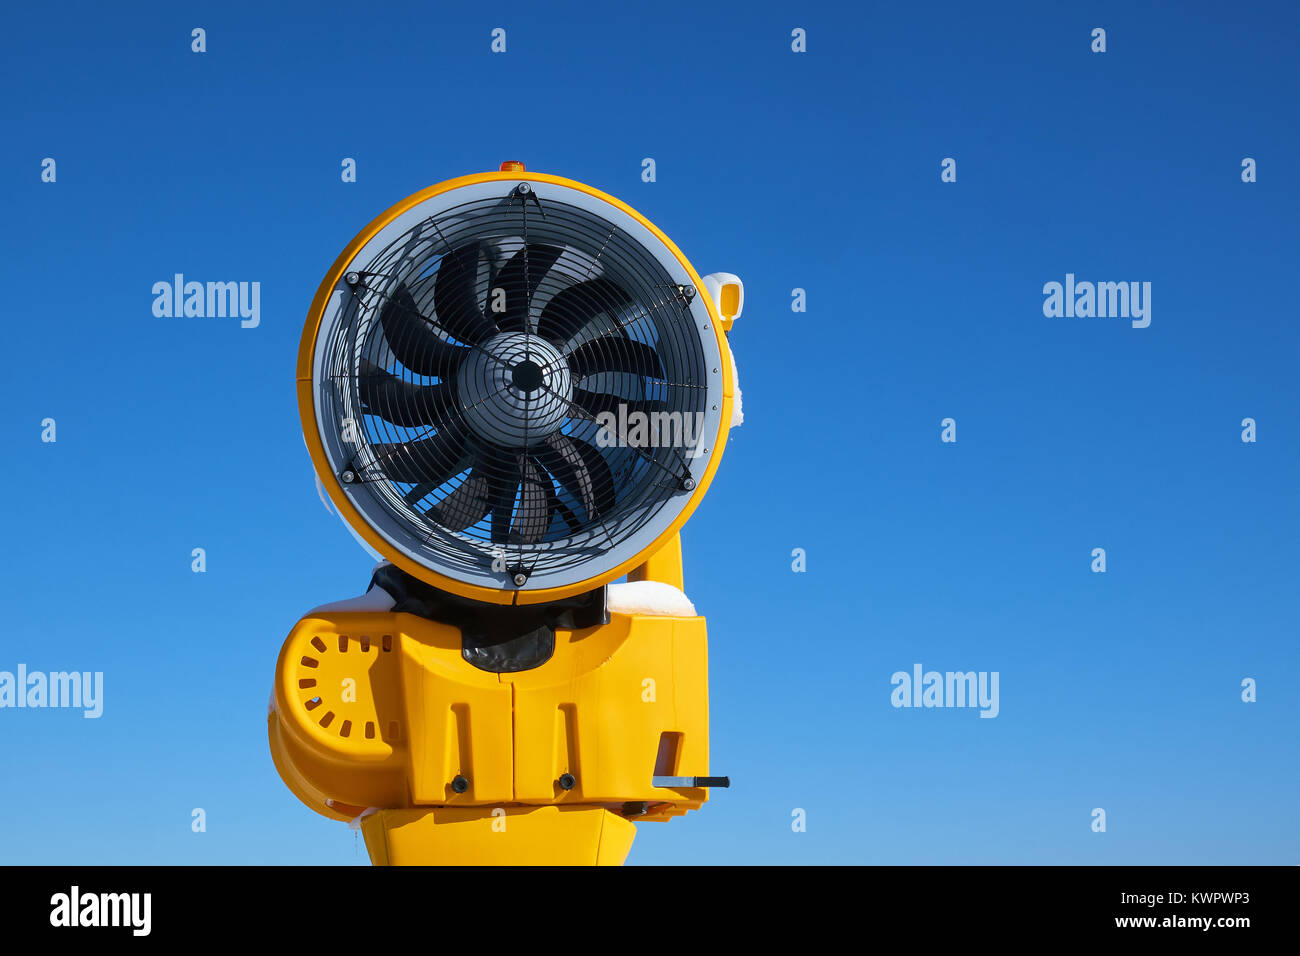 One turned off yellow snow cannon at Ski Carousel Winterberg against a clear blue sky - Stock Image